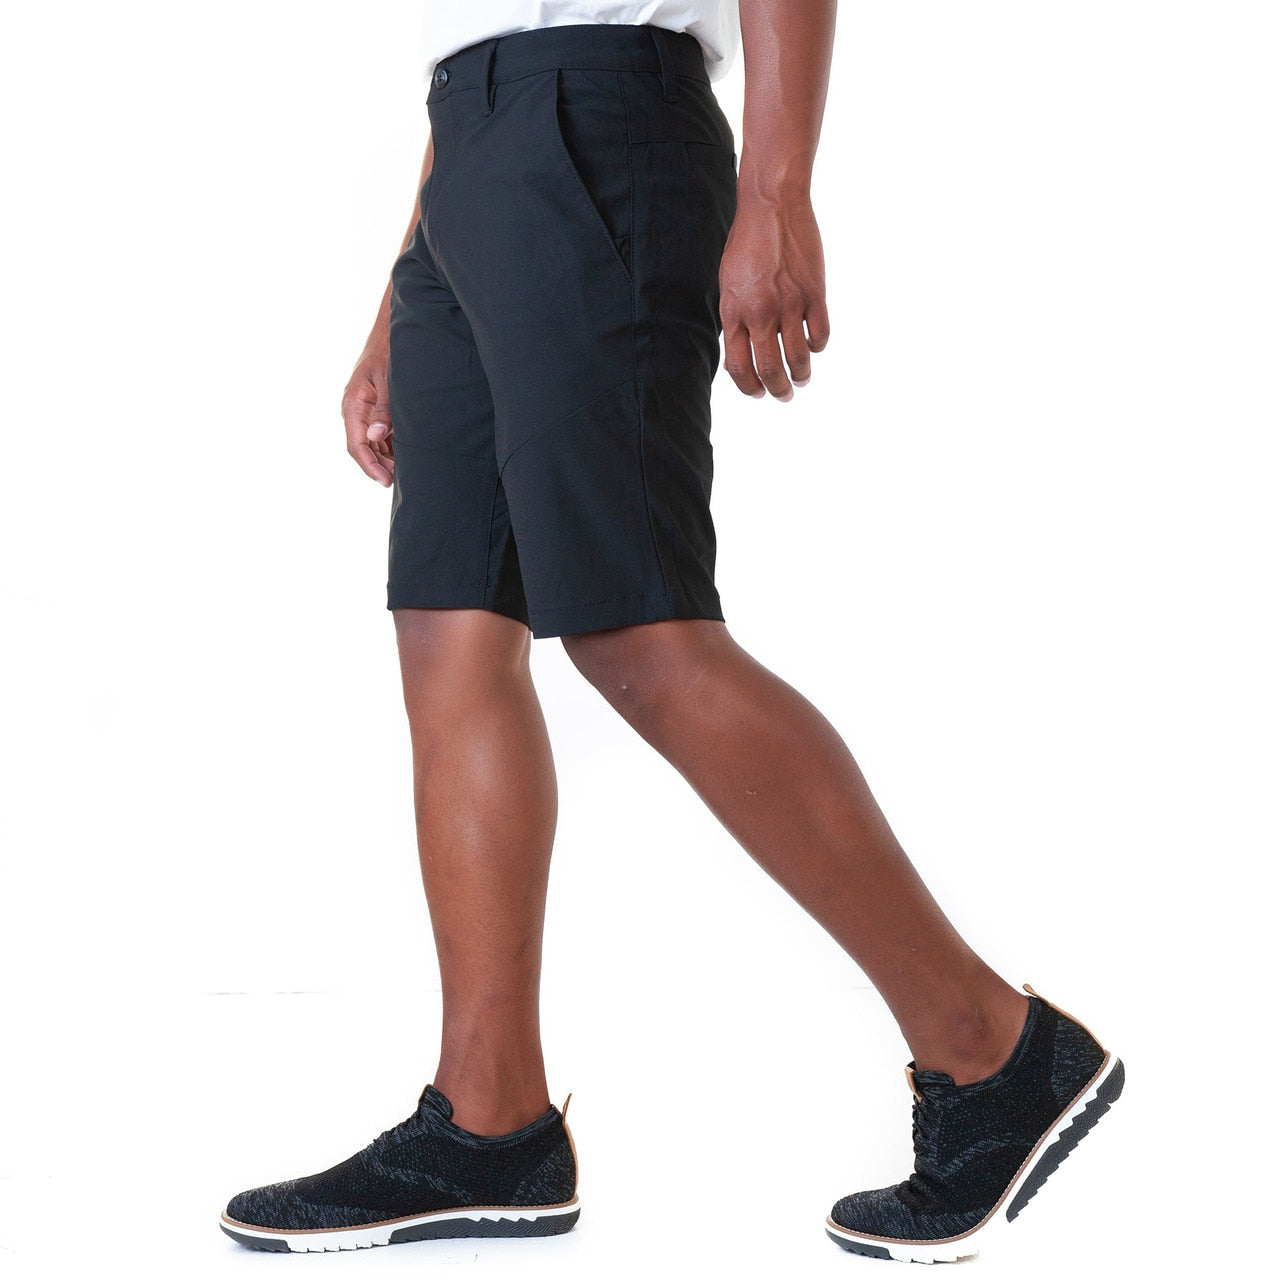 Flux Shorts - Black